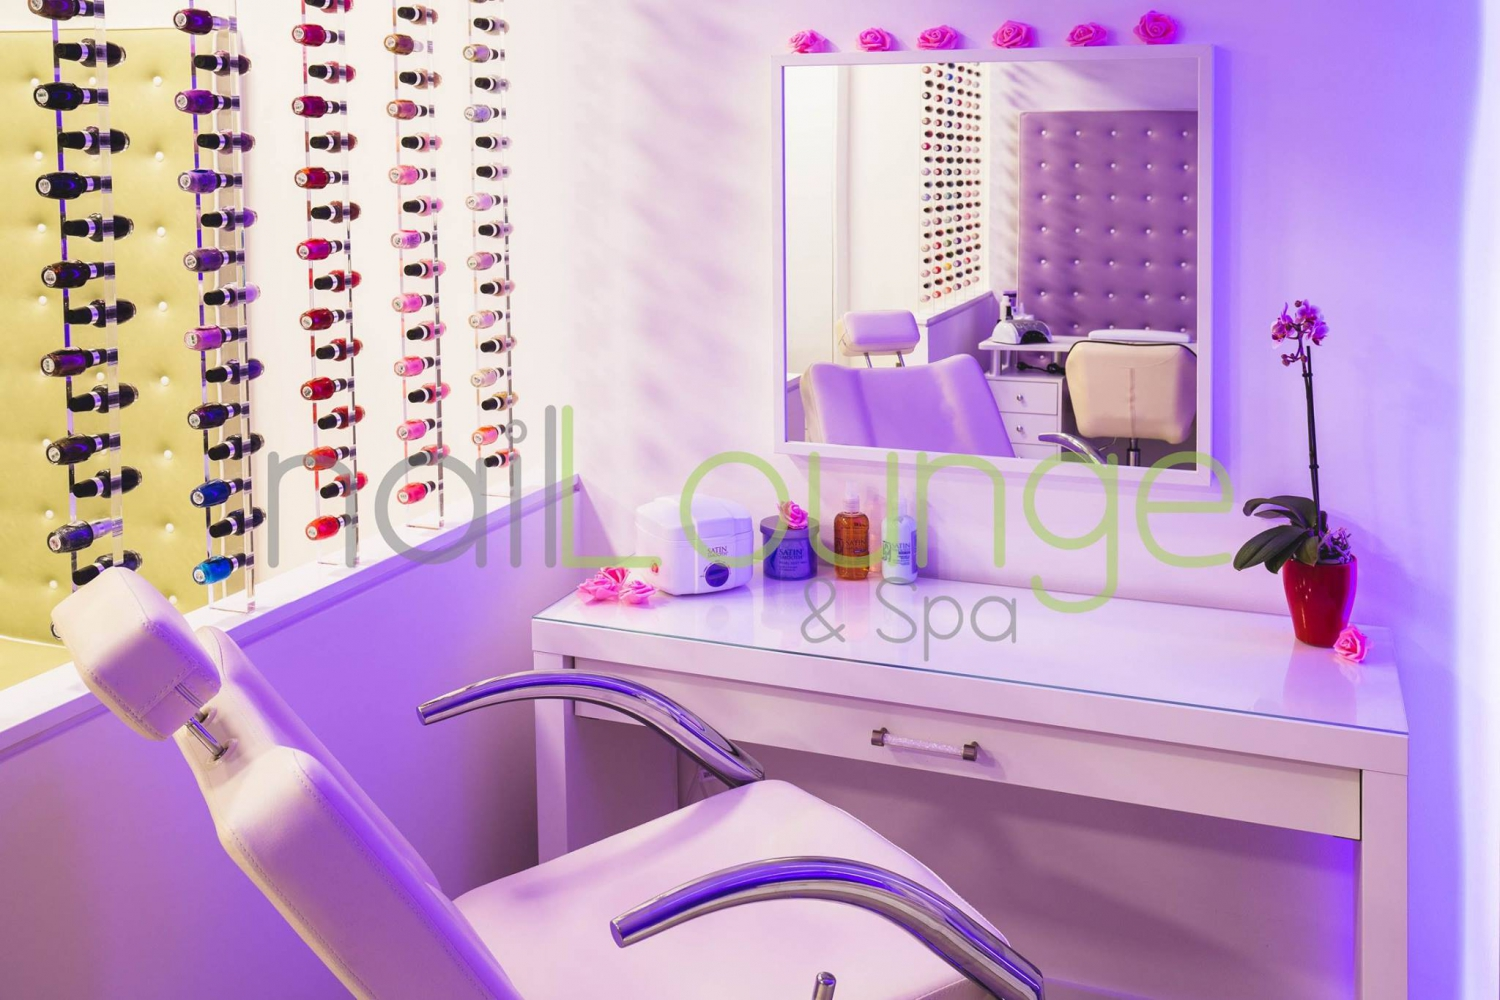 Nail and Lounge Spa